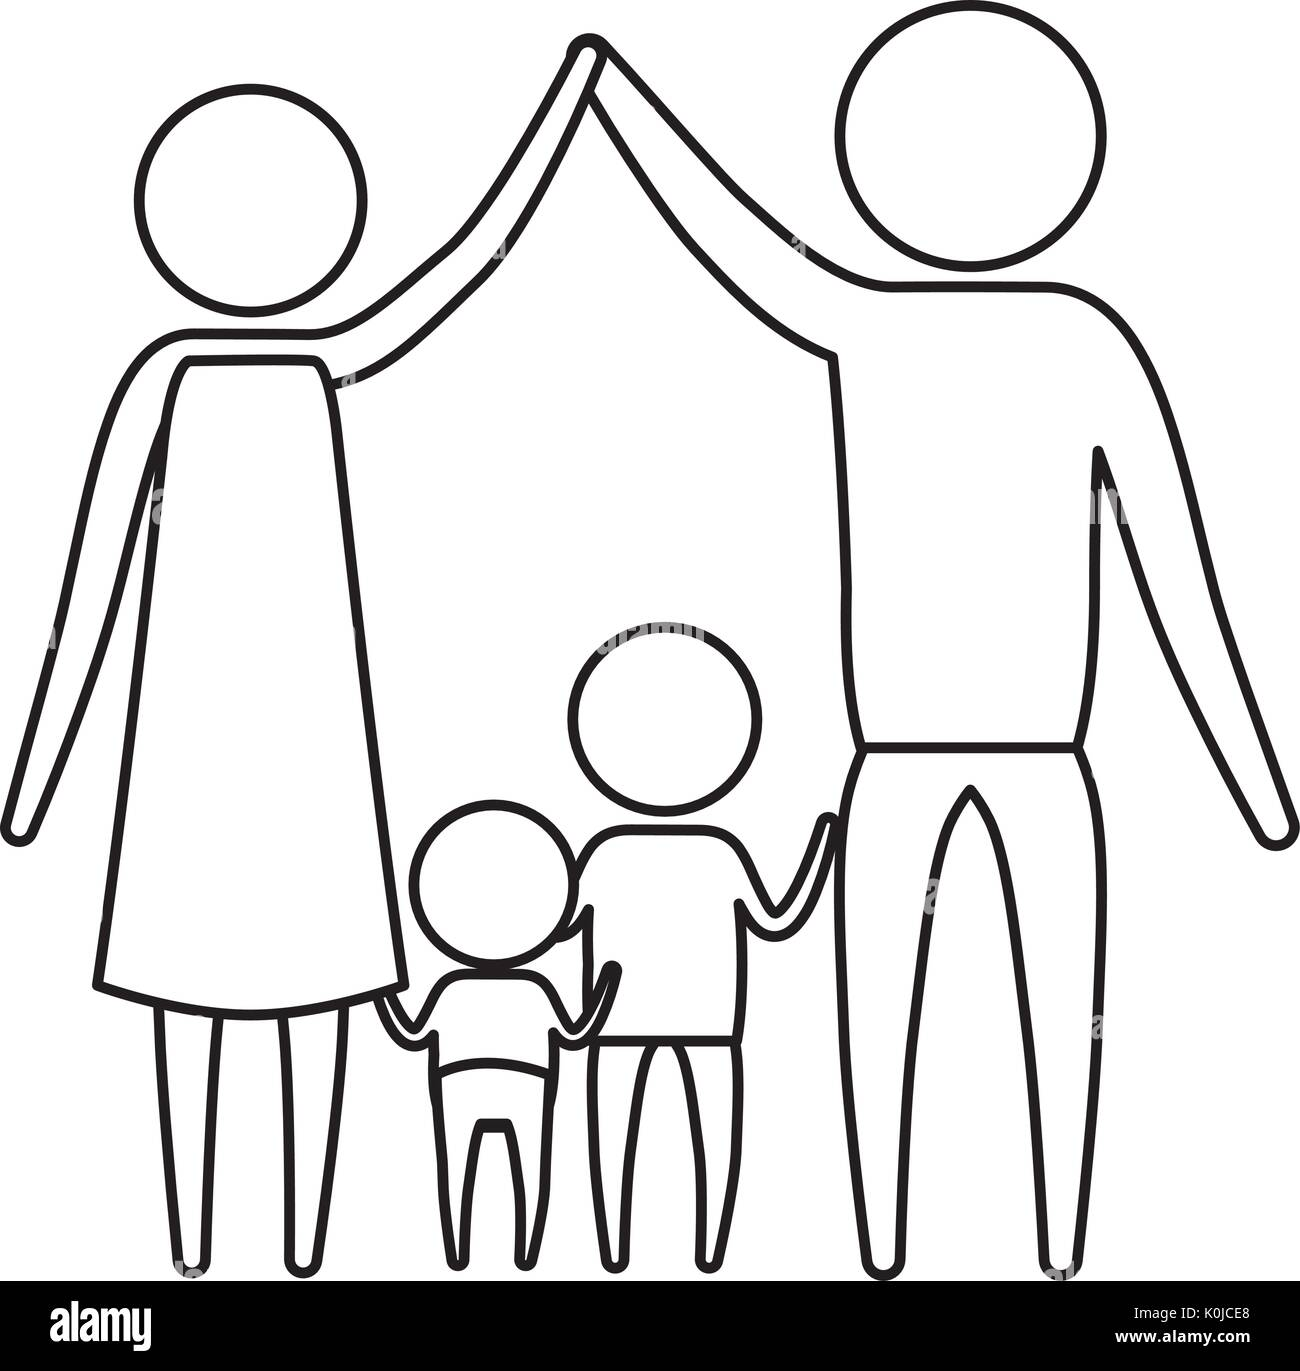 Sketch silhouette of pictogram parents holding hands up and baby girl and boy in the middle of them